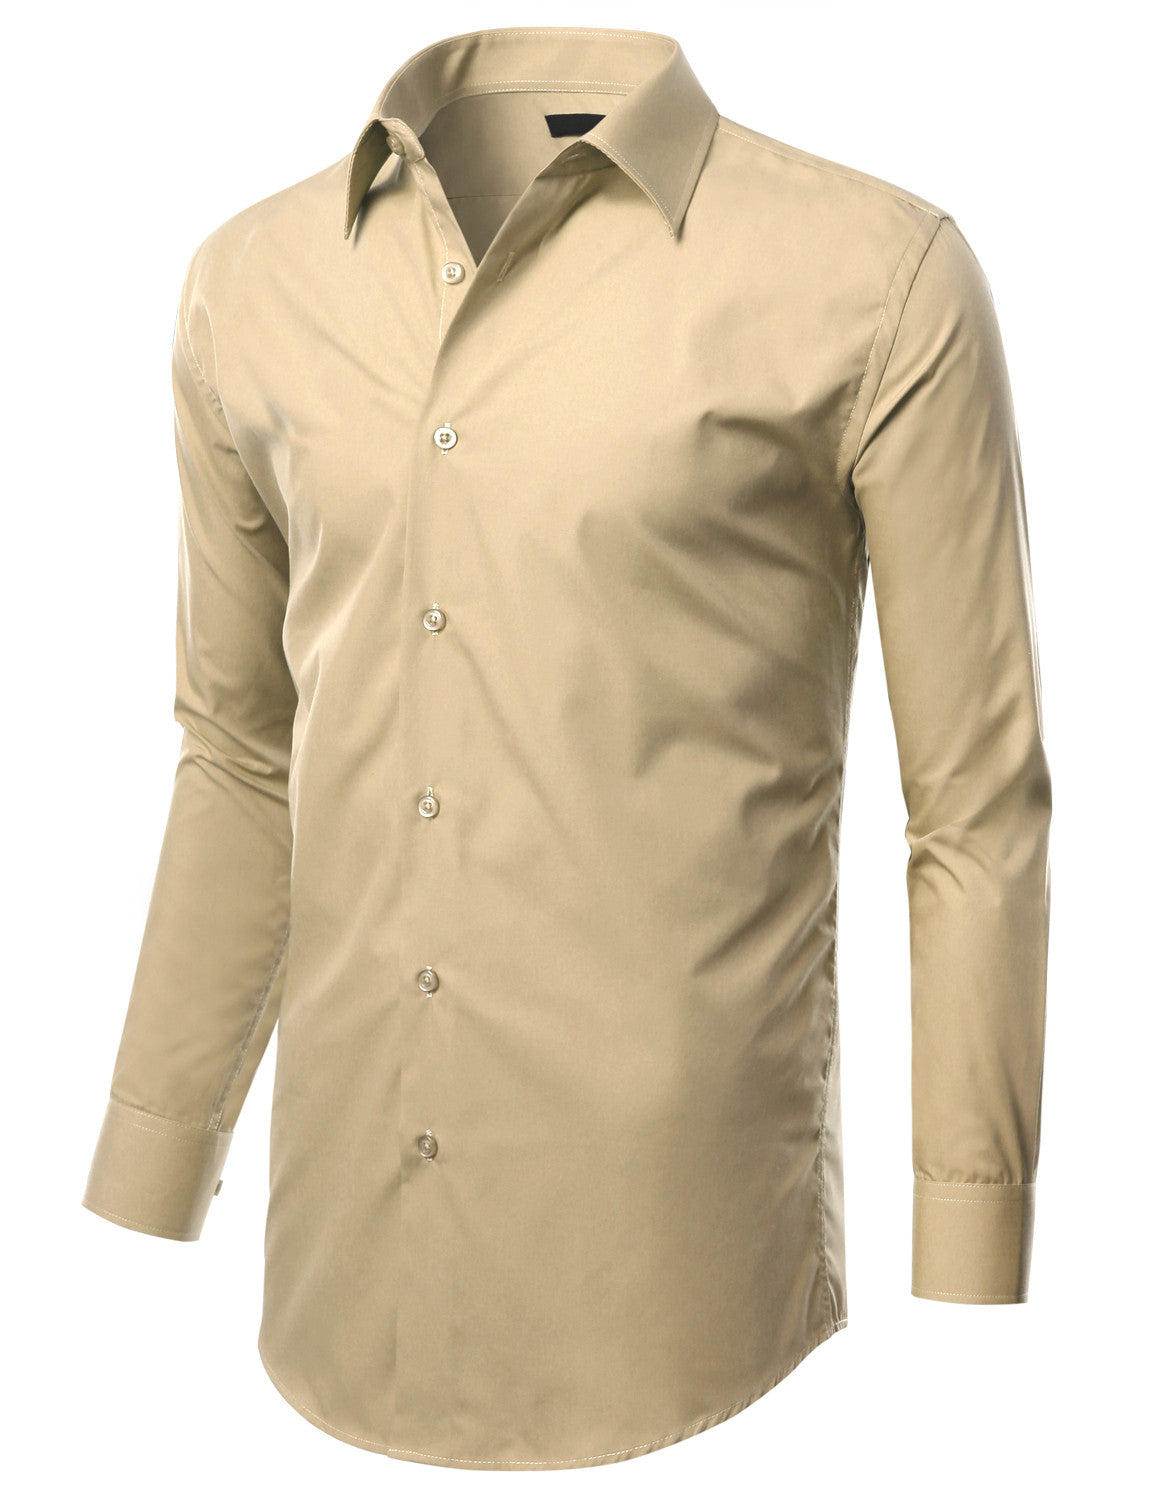 TC023BEIGE Beige Slim Fit Dress Shirt w/ Reversible Cuff (Big & Tall Available)- MONDAYSUIT